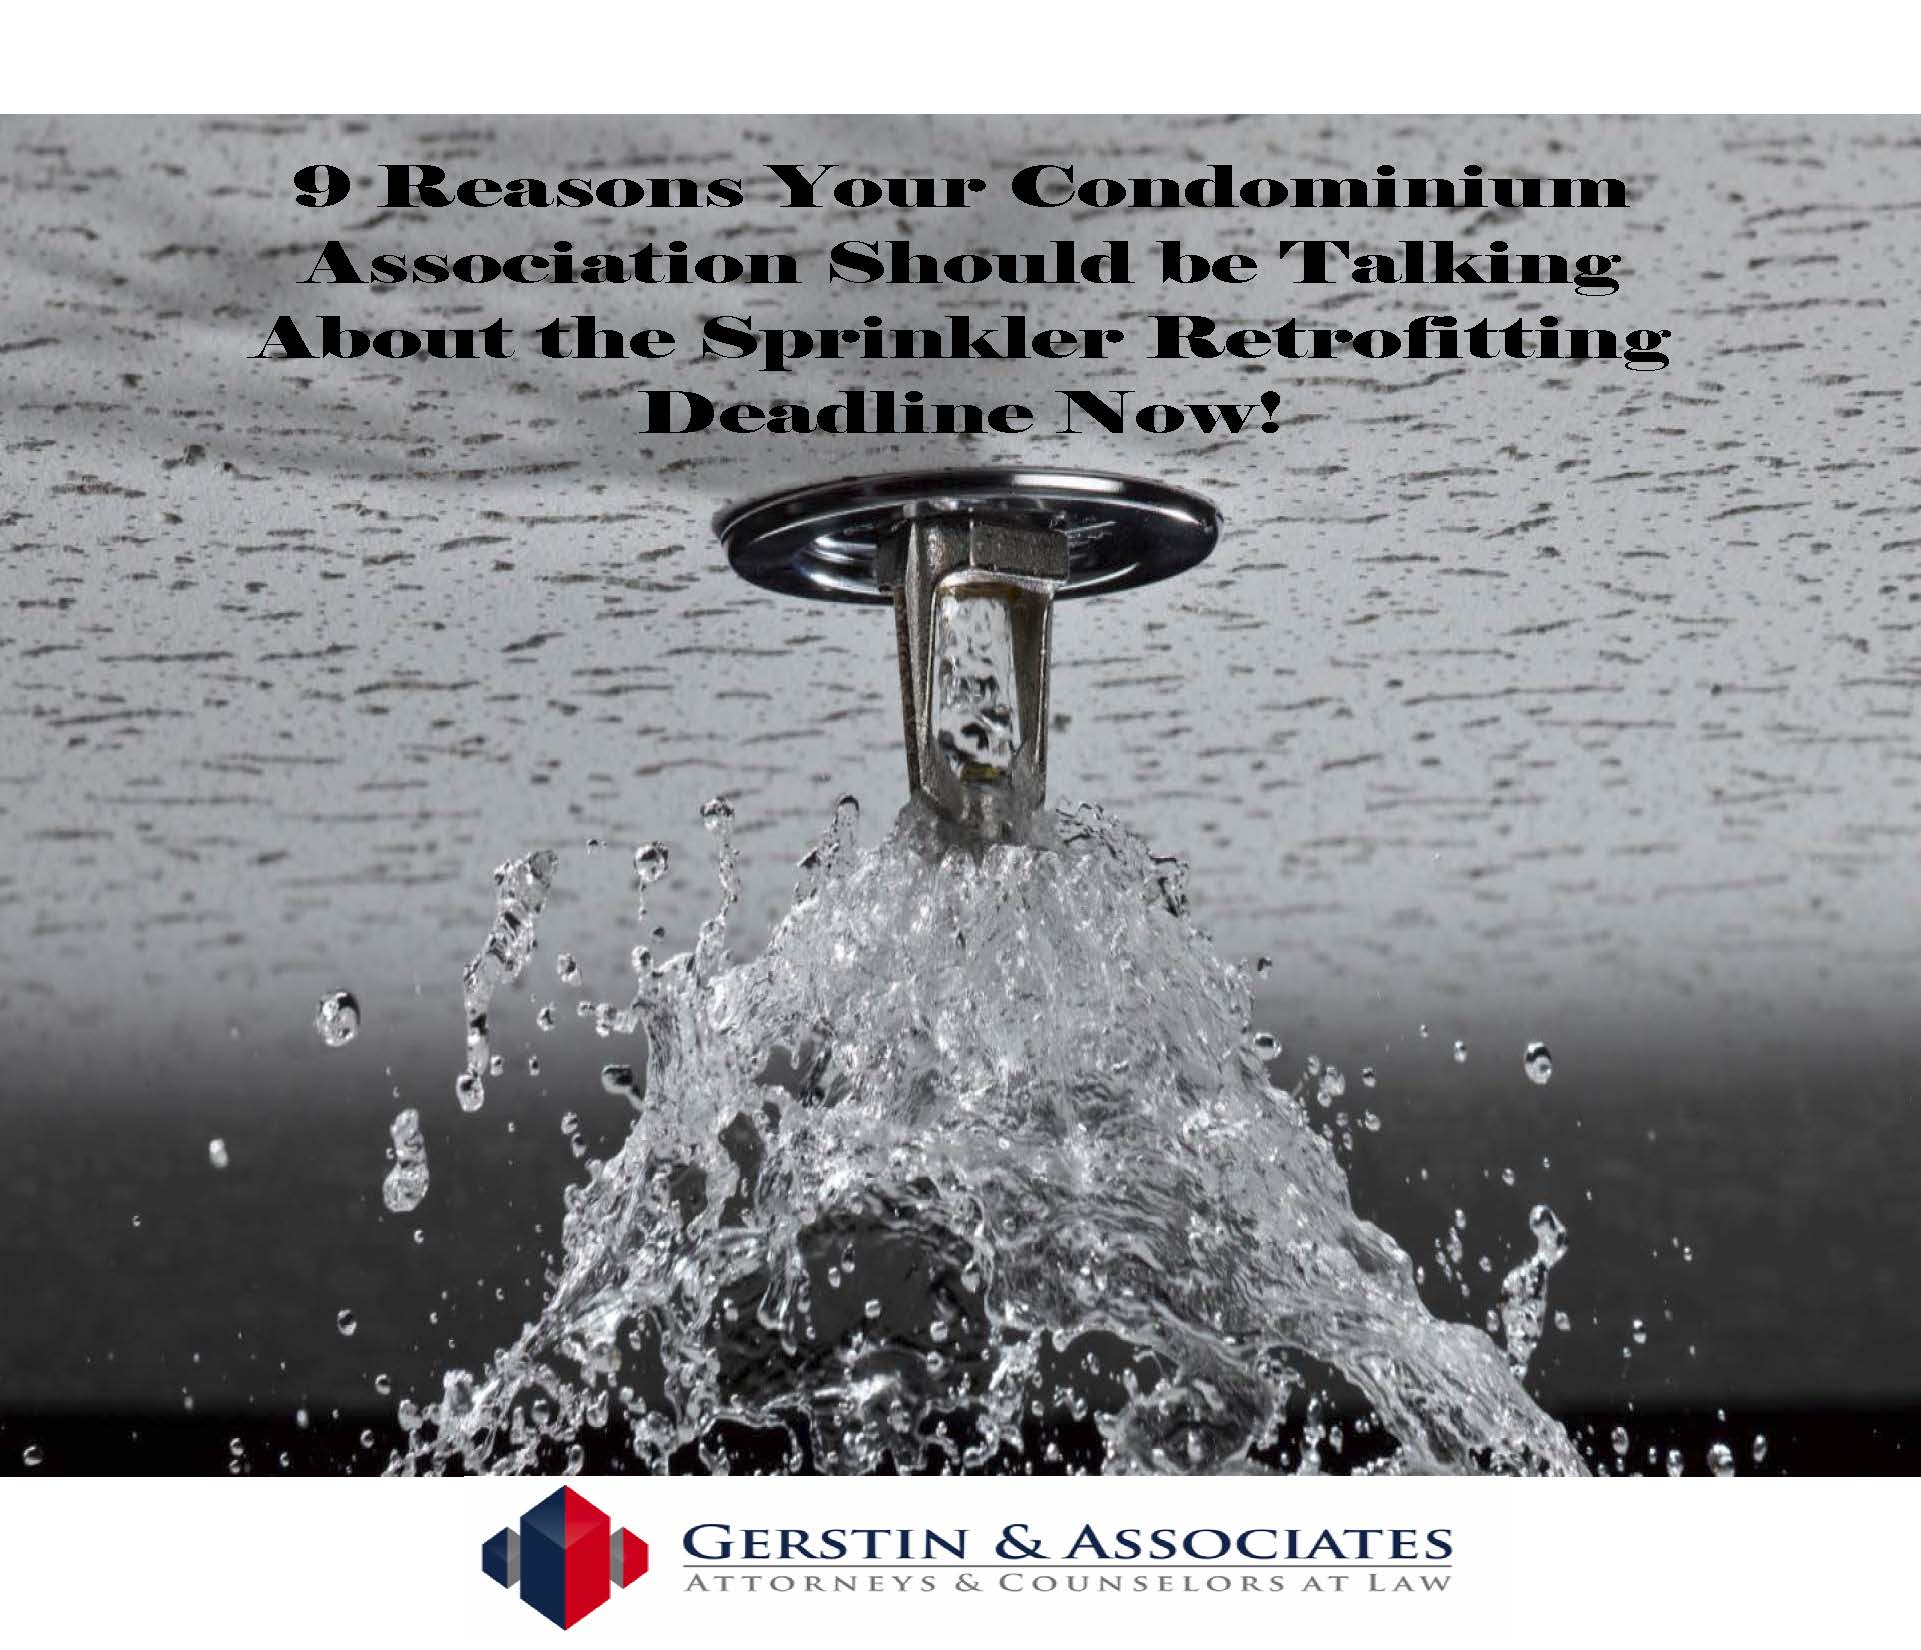 9 Reasons Your Condominium Should be Talking About The Sprinkler Retrofitting Deadline Now